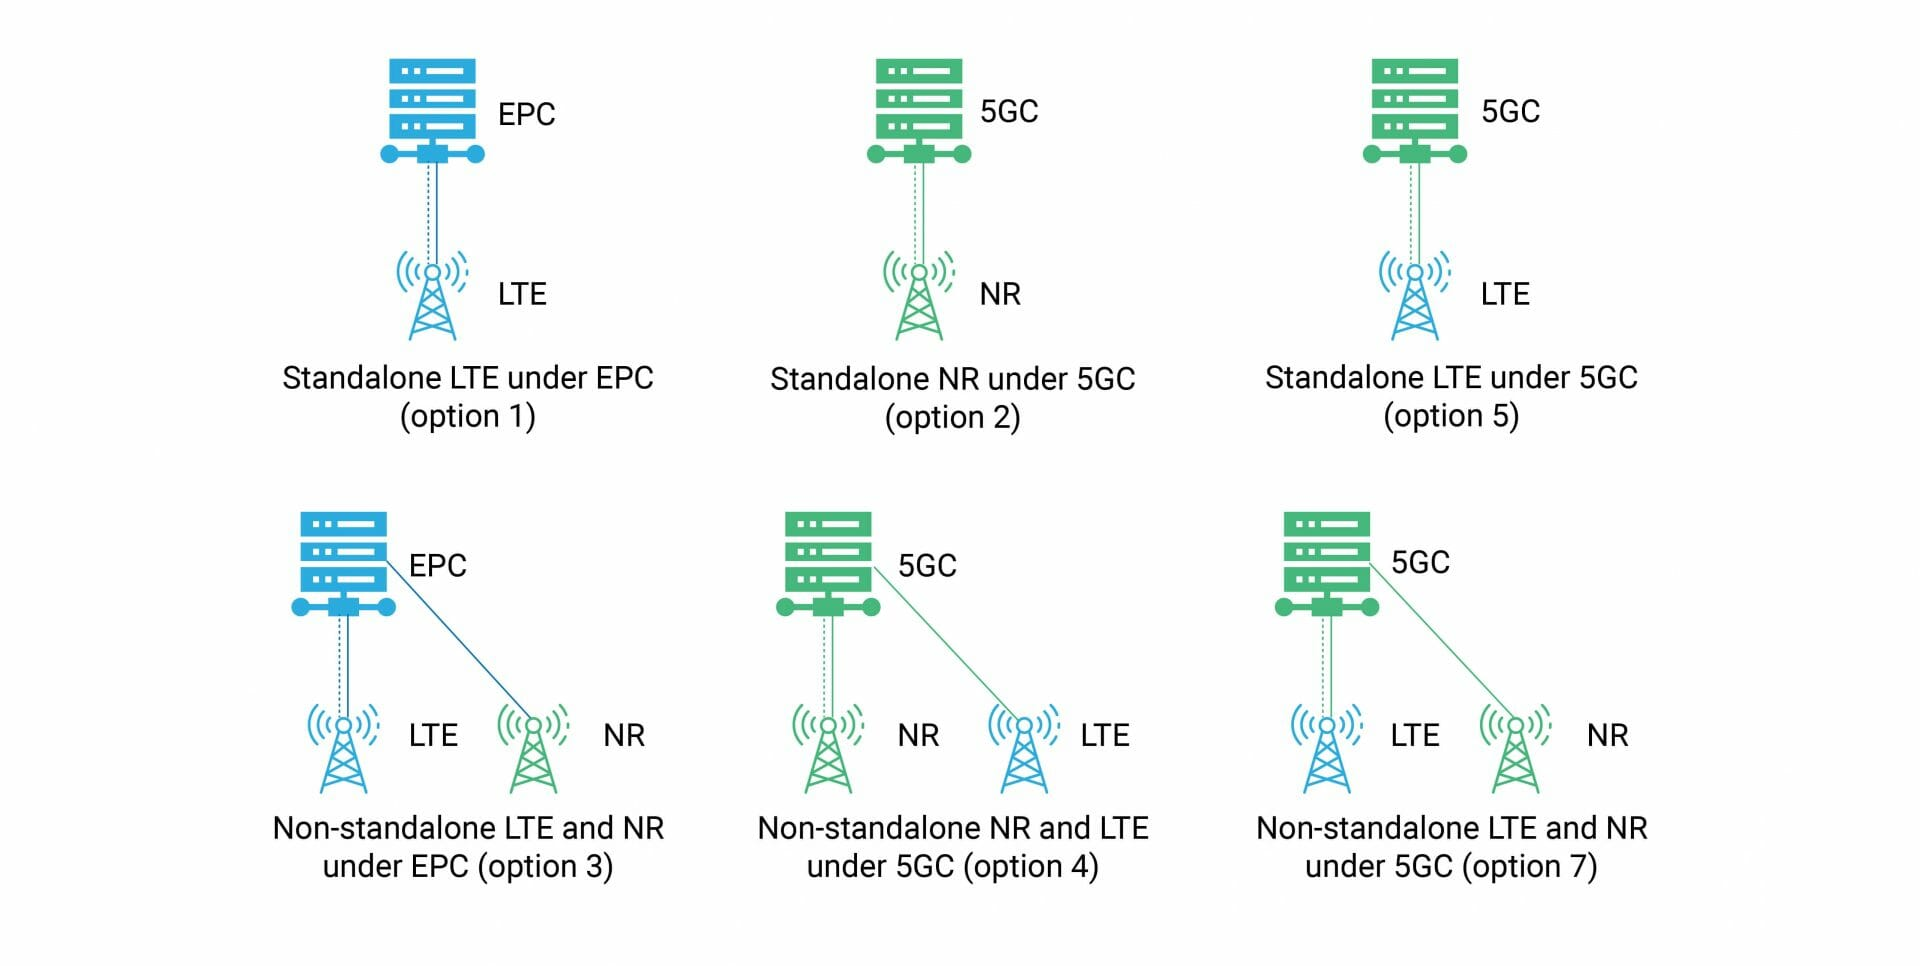 5G SA vs 5G NSA deployment: What are the differences